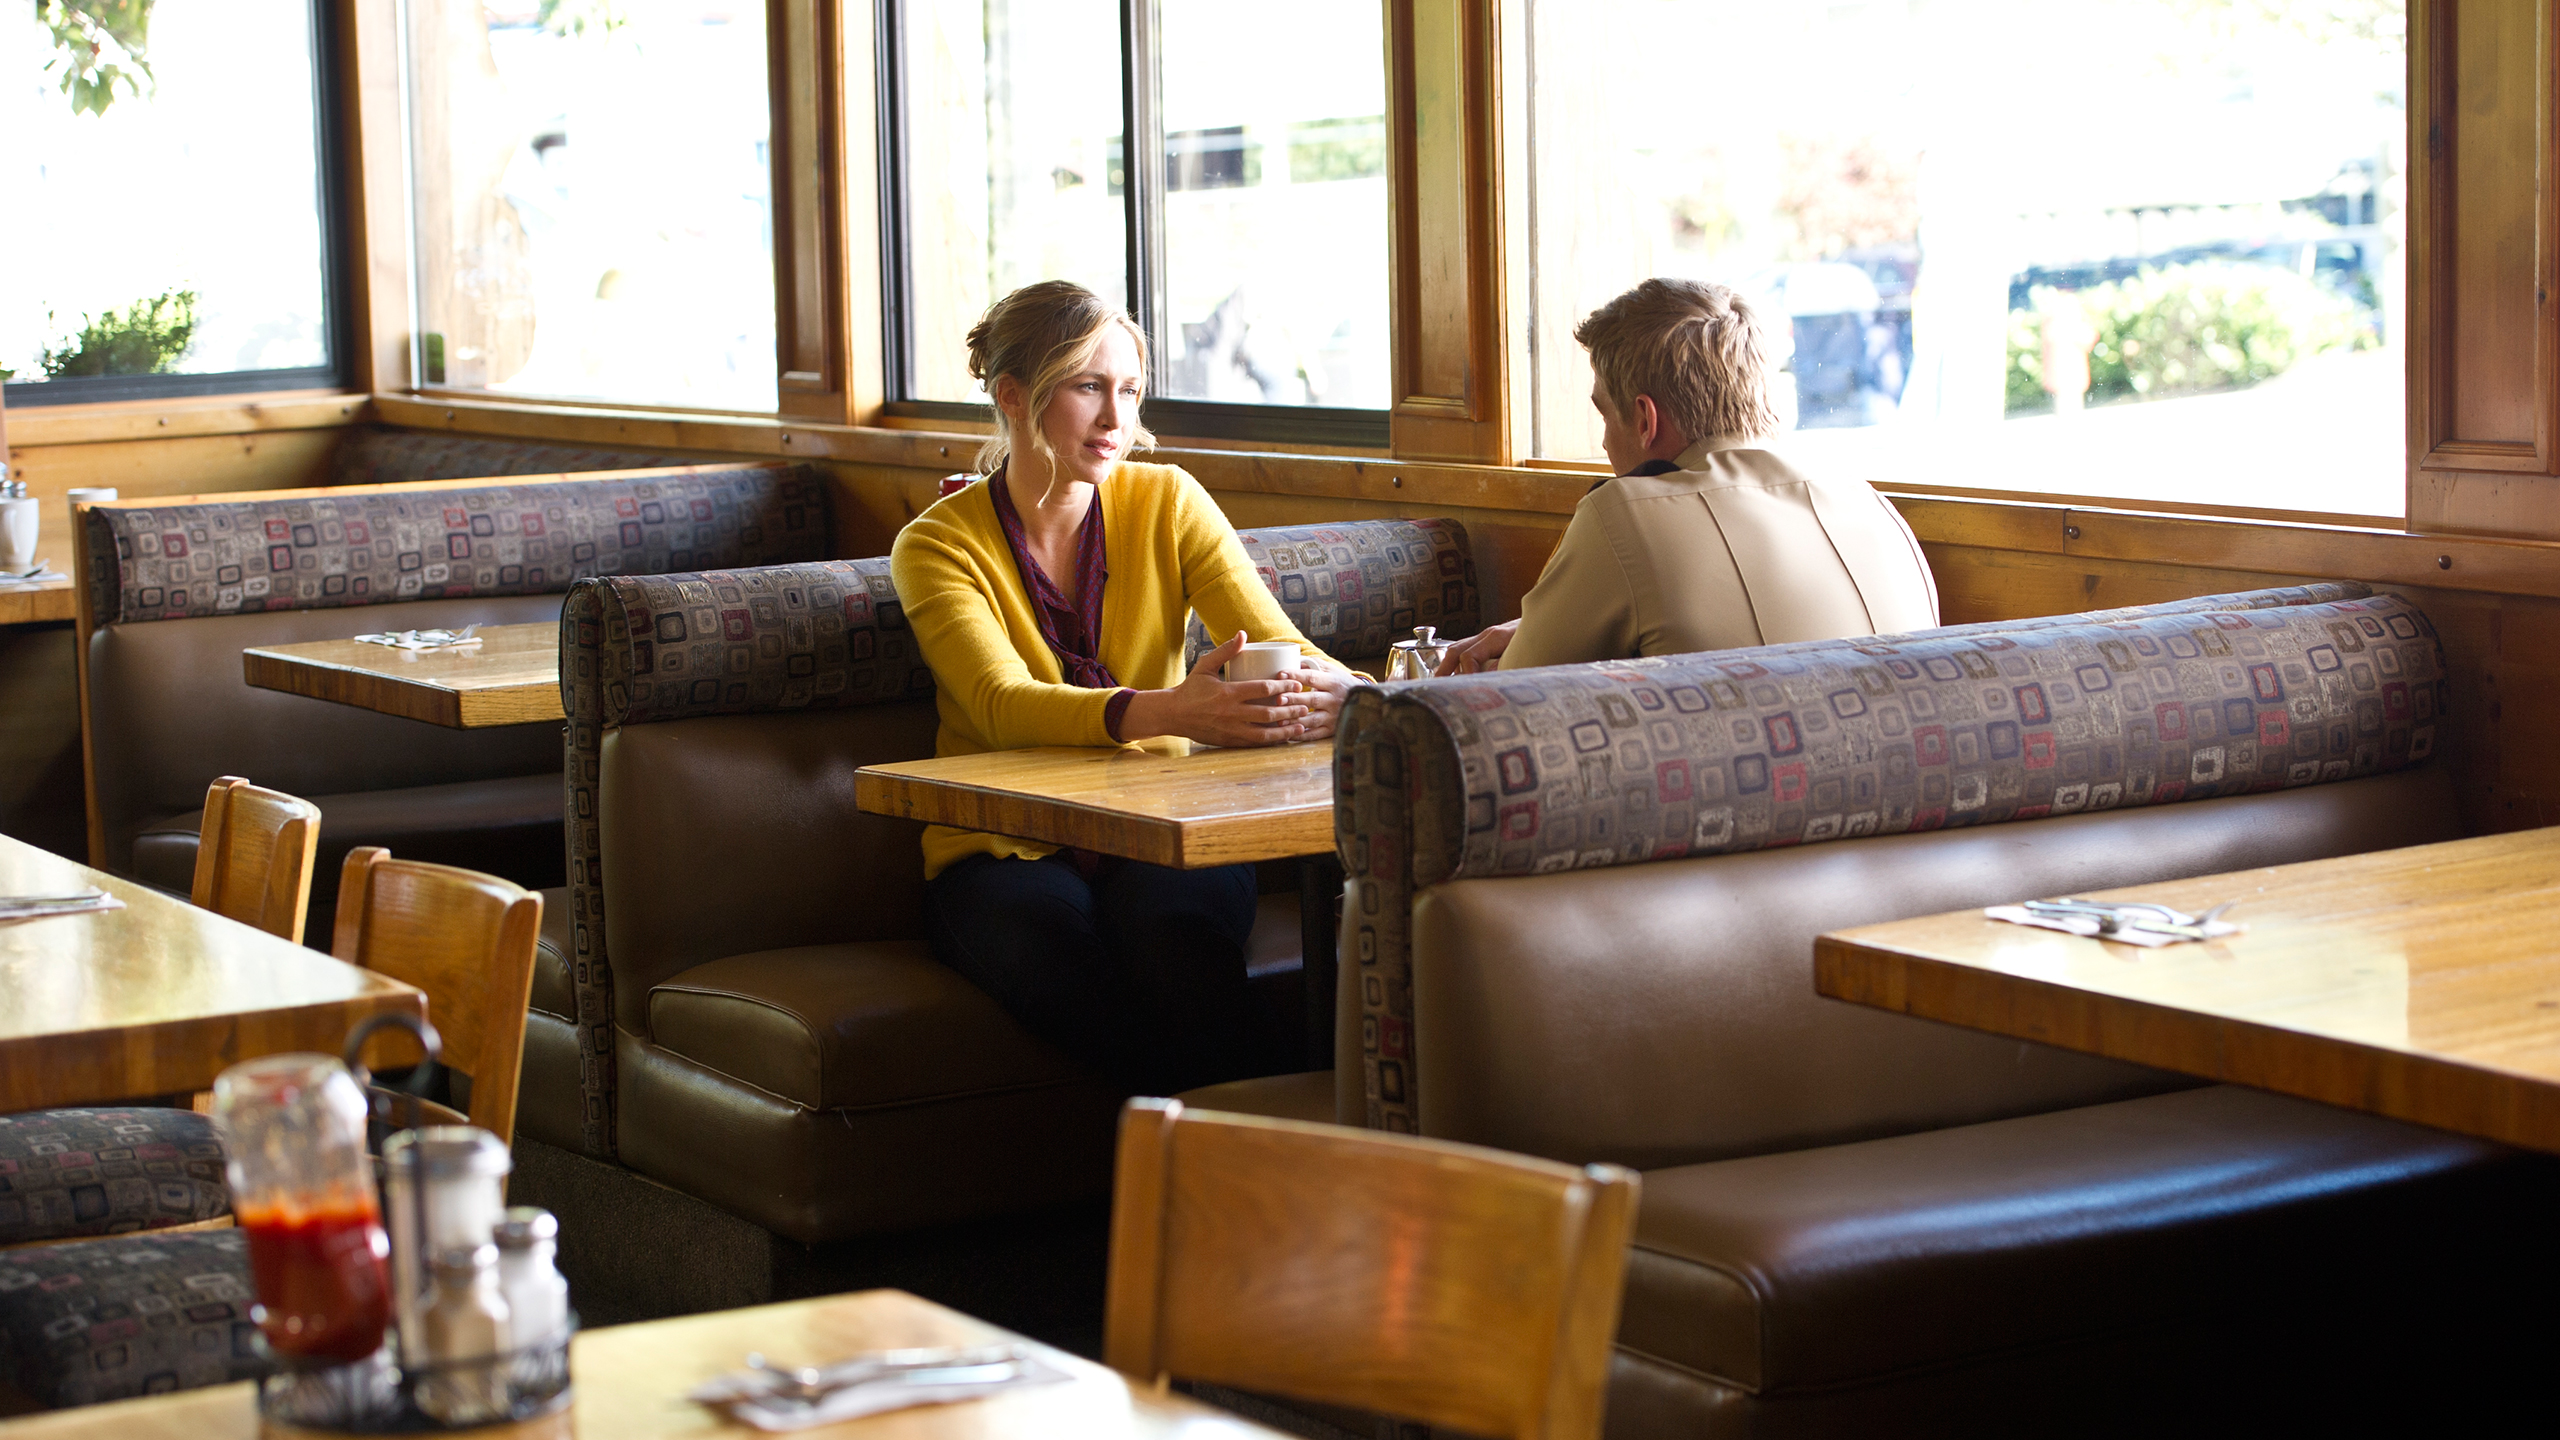 File:15-norma-bates-and-deputy-shelby-have-a-chat.jpg